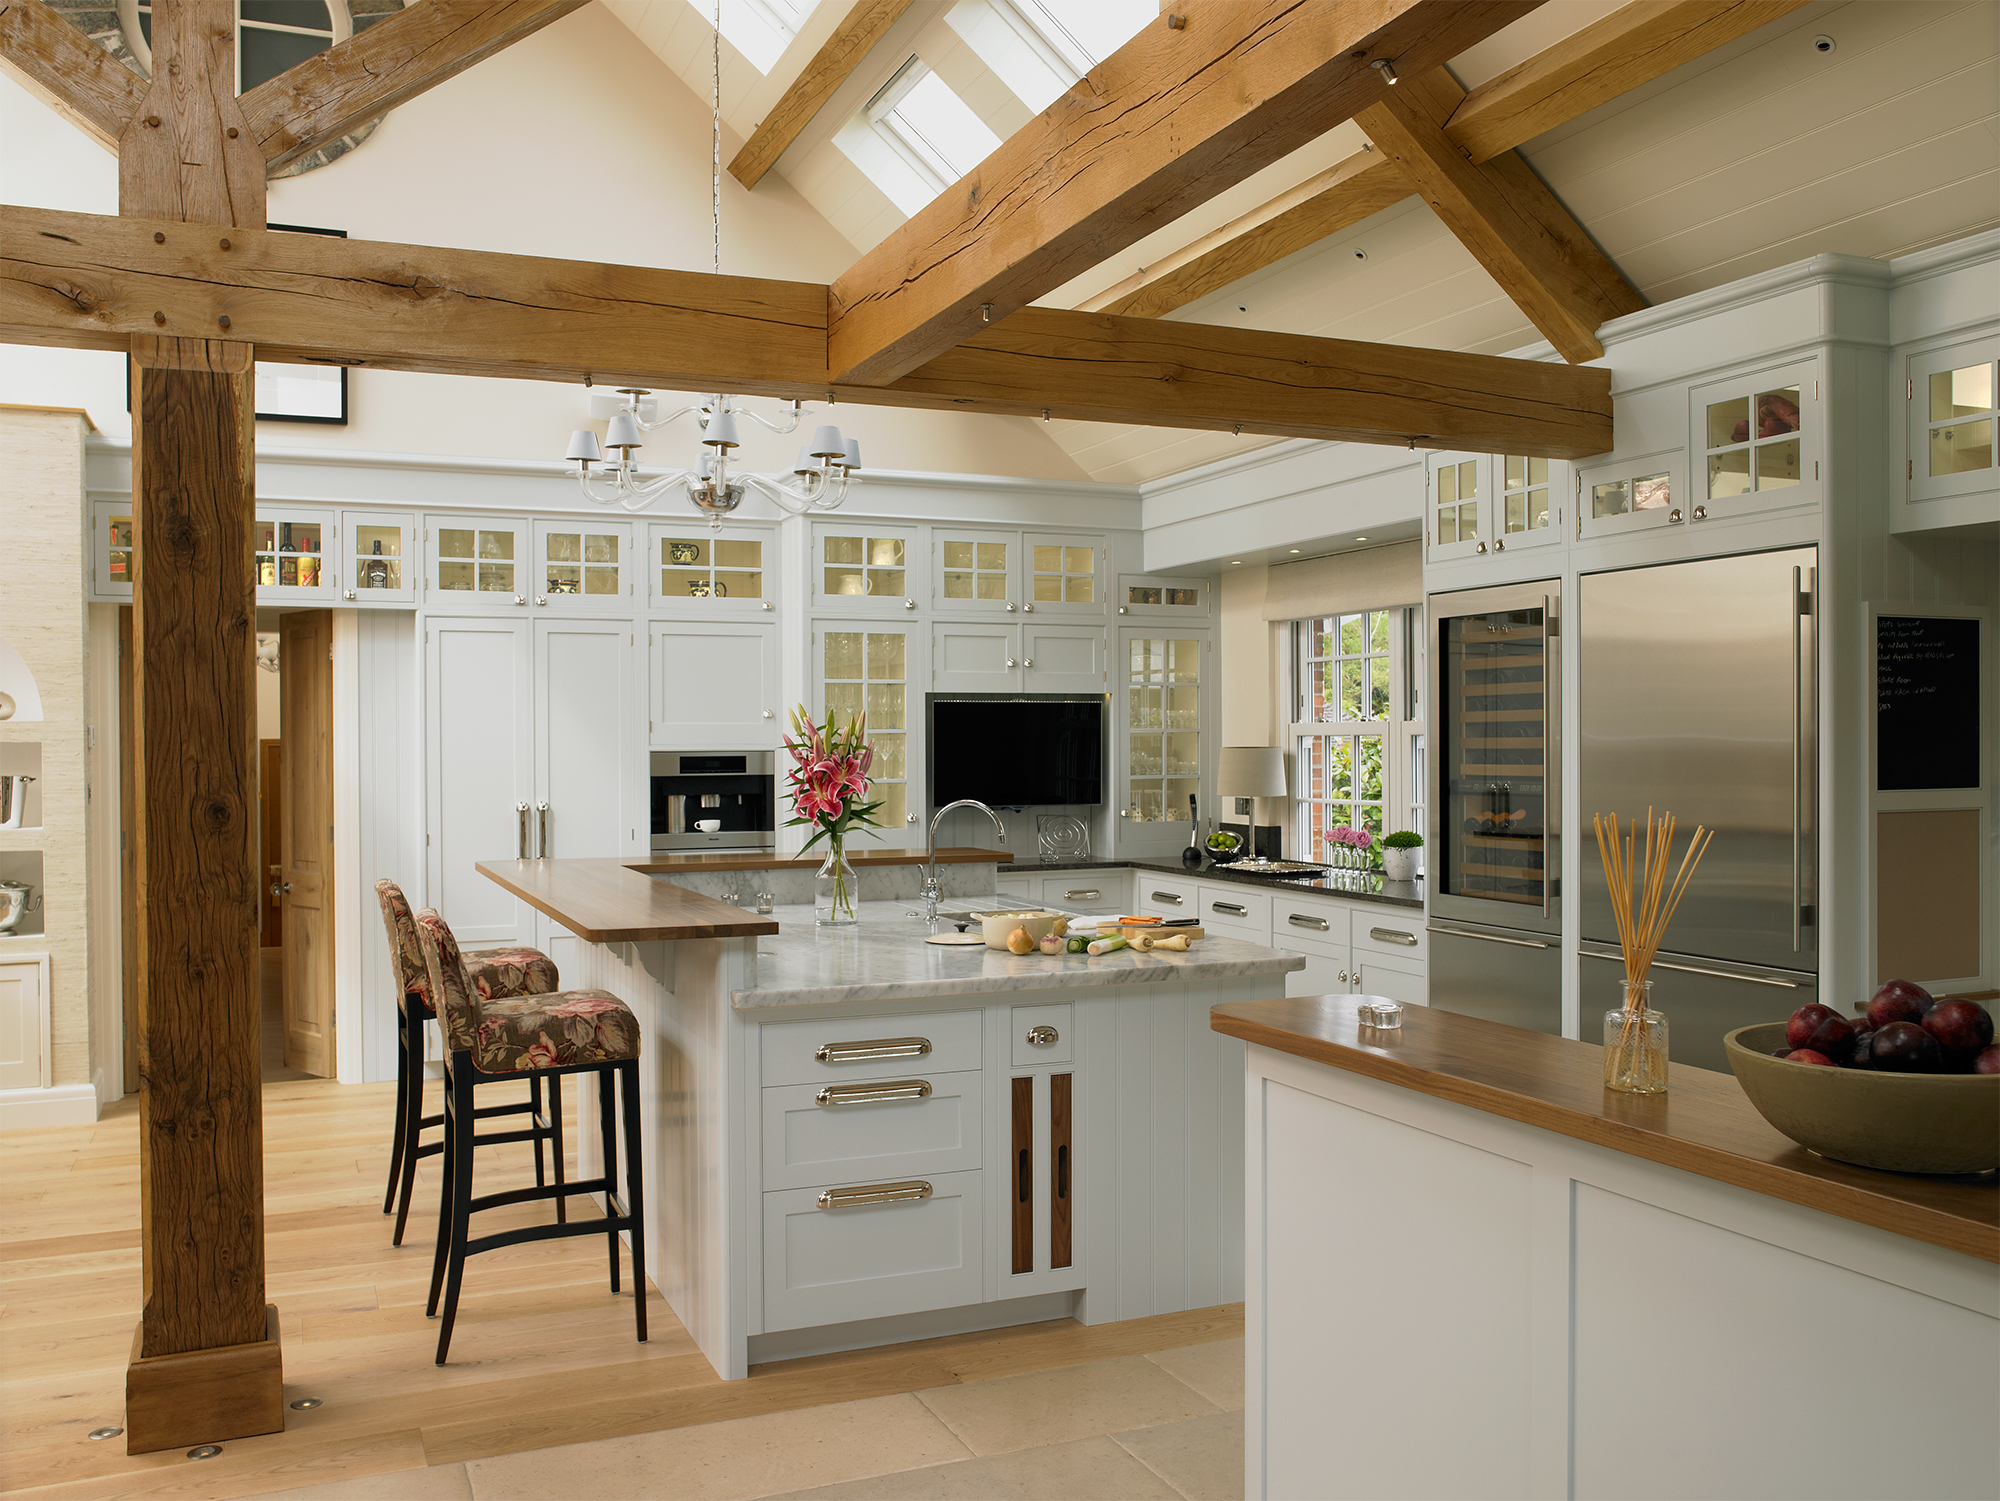 Luxury Bespoke Kitchens - New England Collection | Mark ...